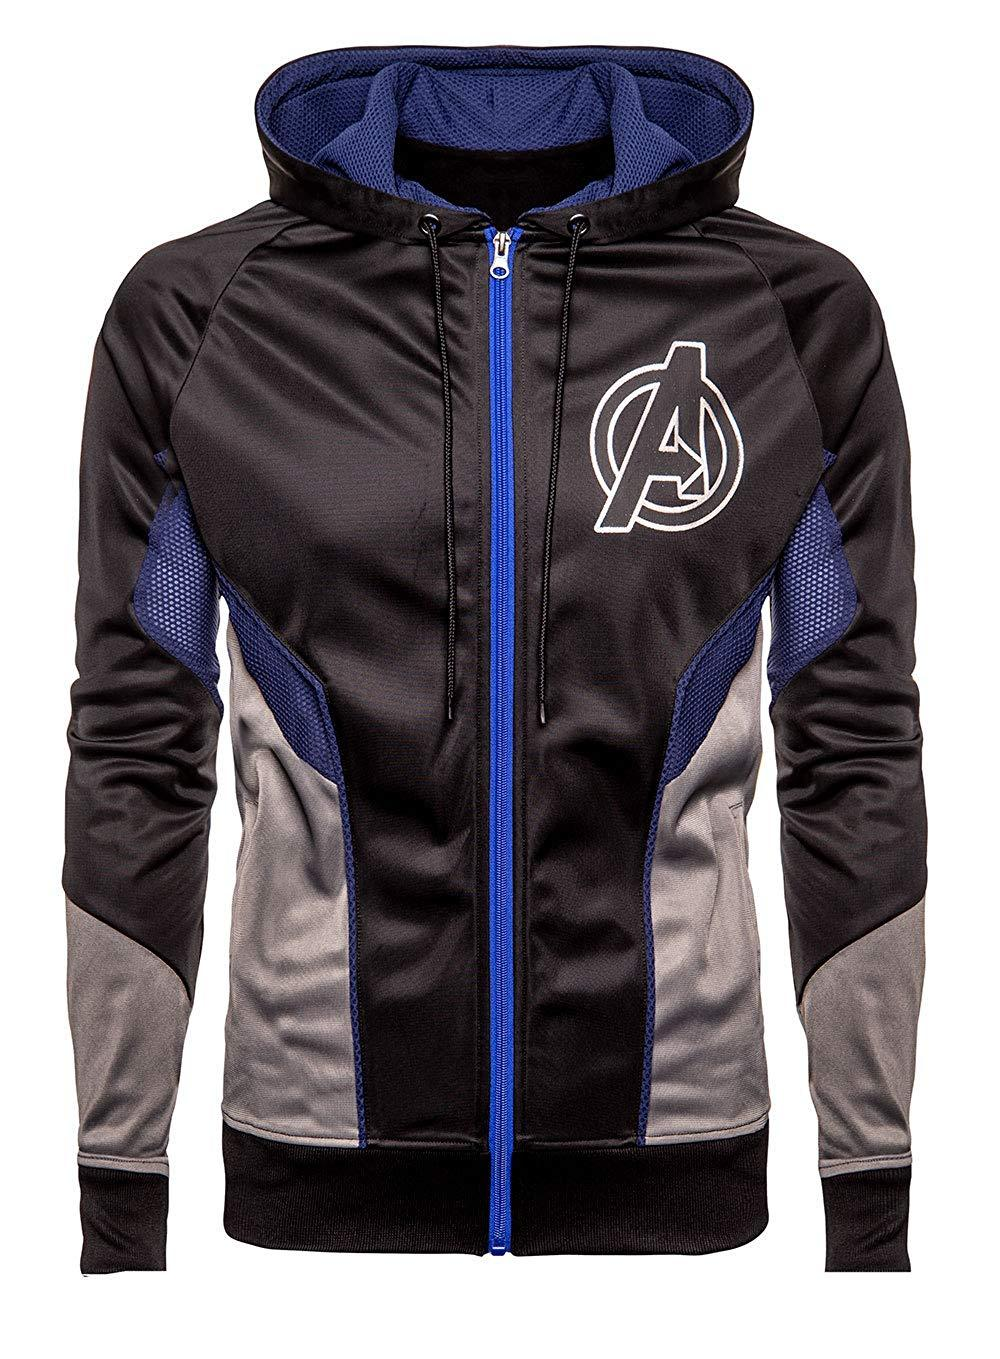 Avengers Endgame Logo Costume Black Hoodie Bomber Satin Jacket For Men